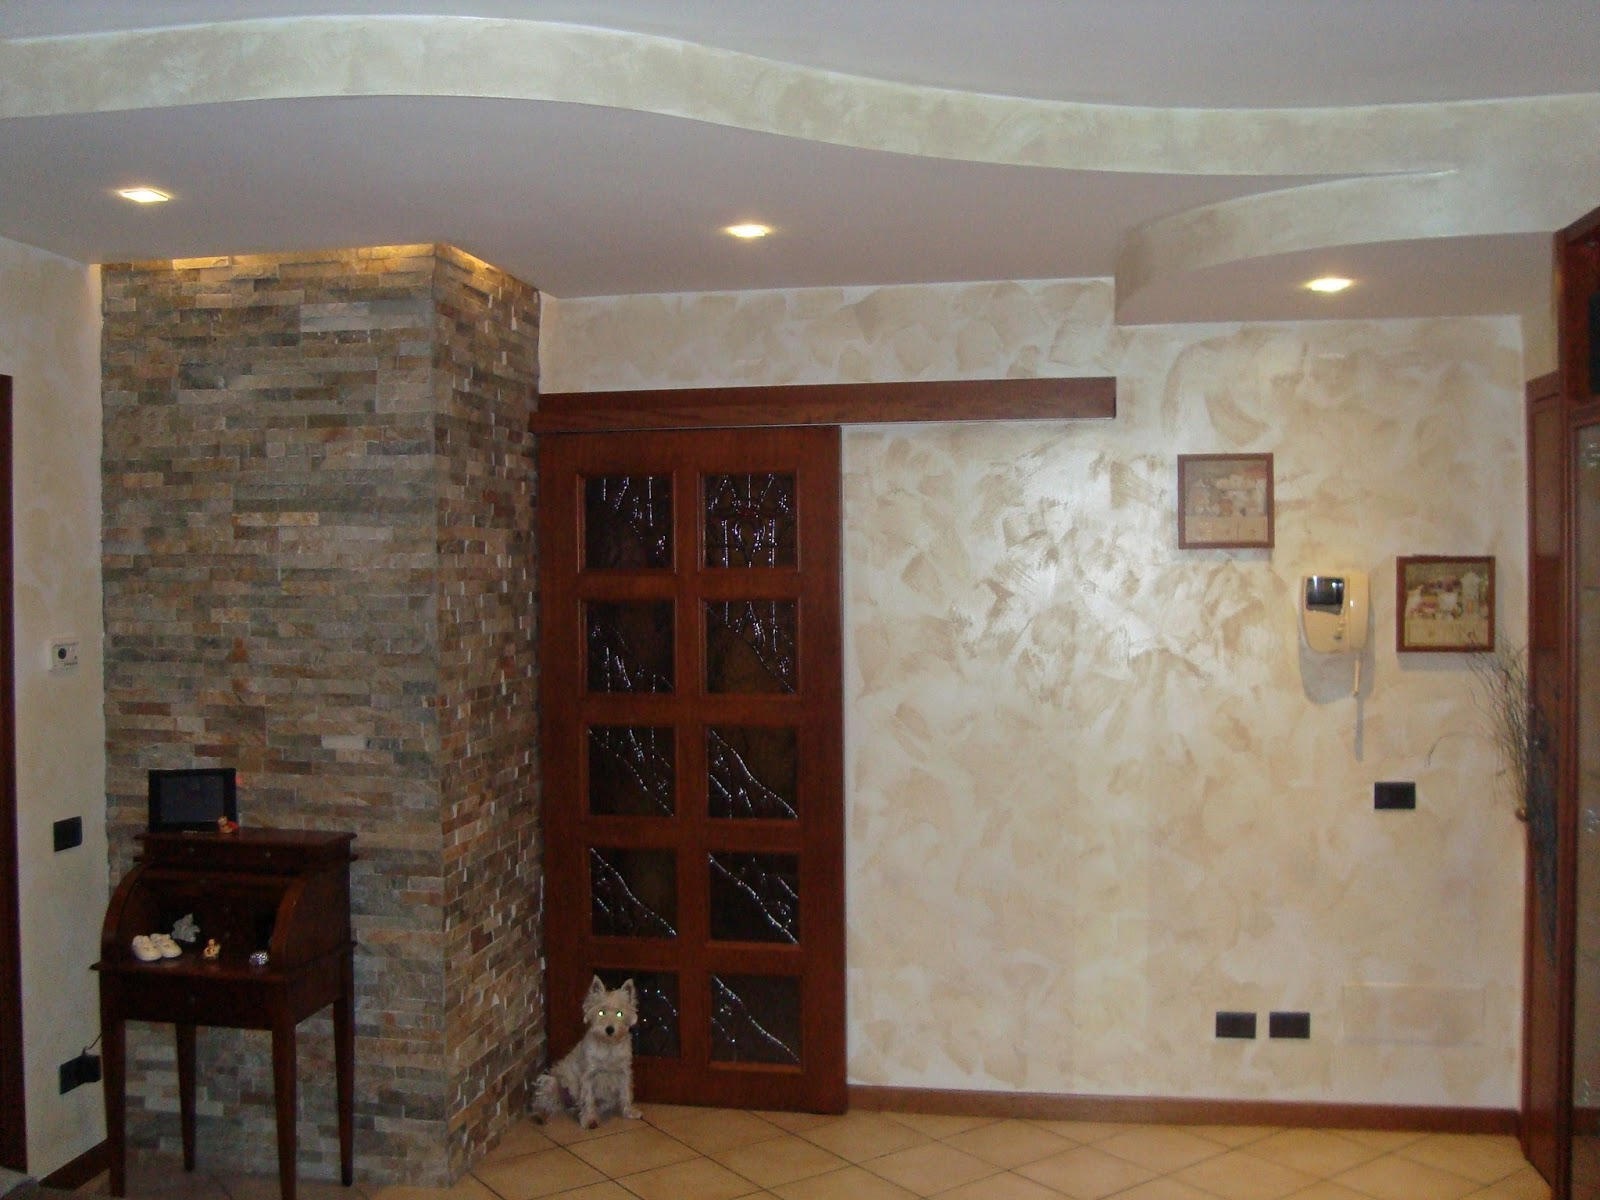 Rivestimento soffitto in cartongesso ~ fatua.net for .